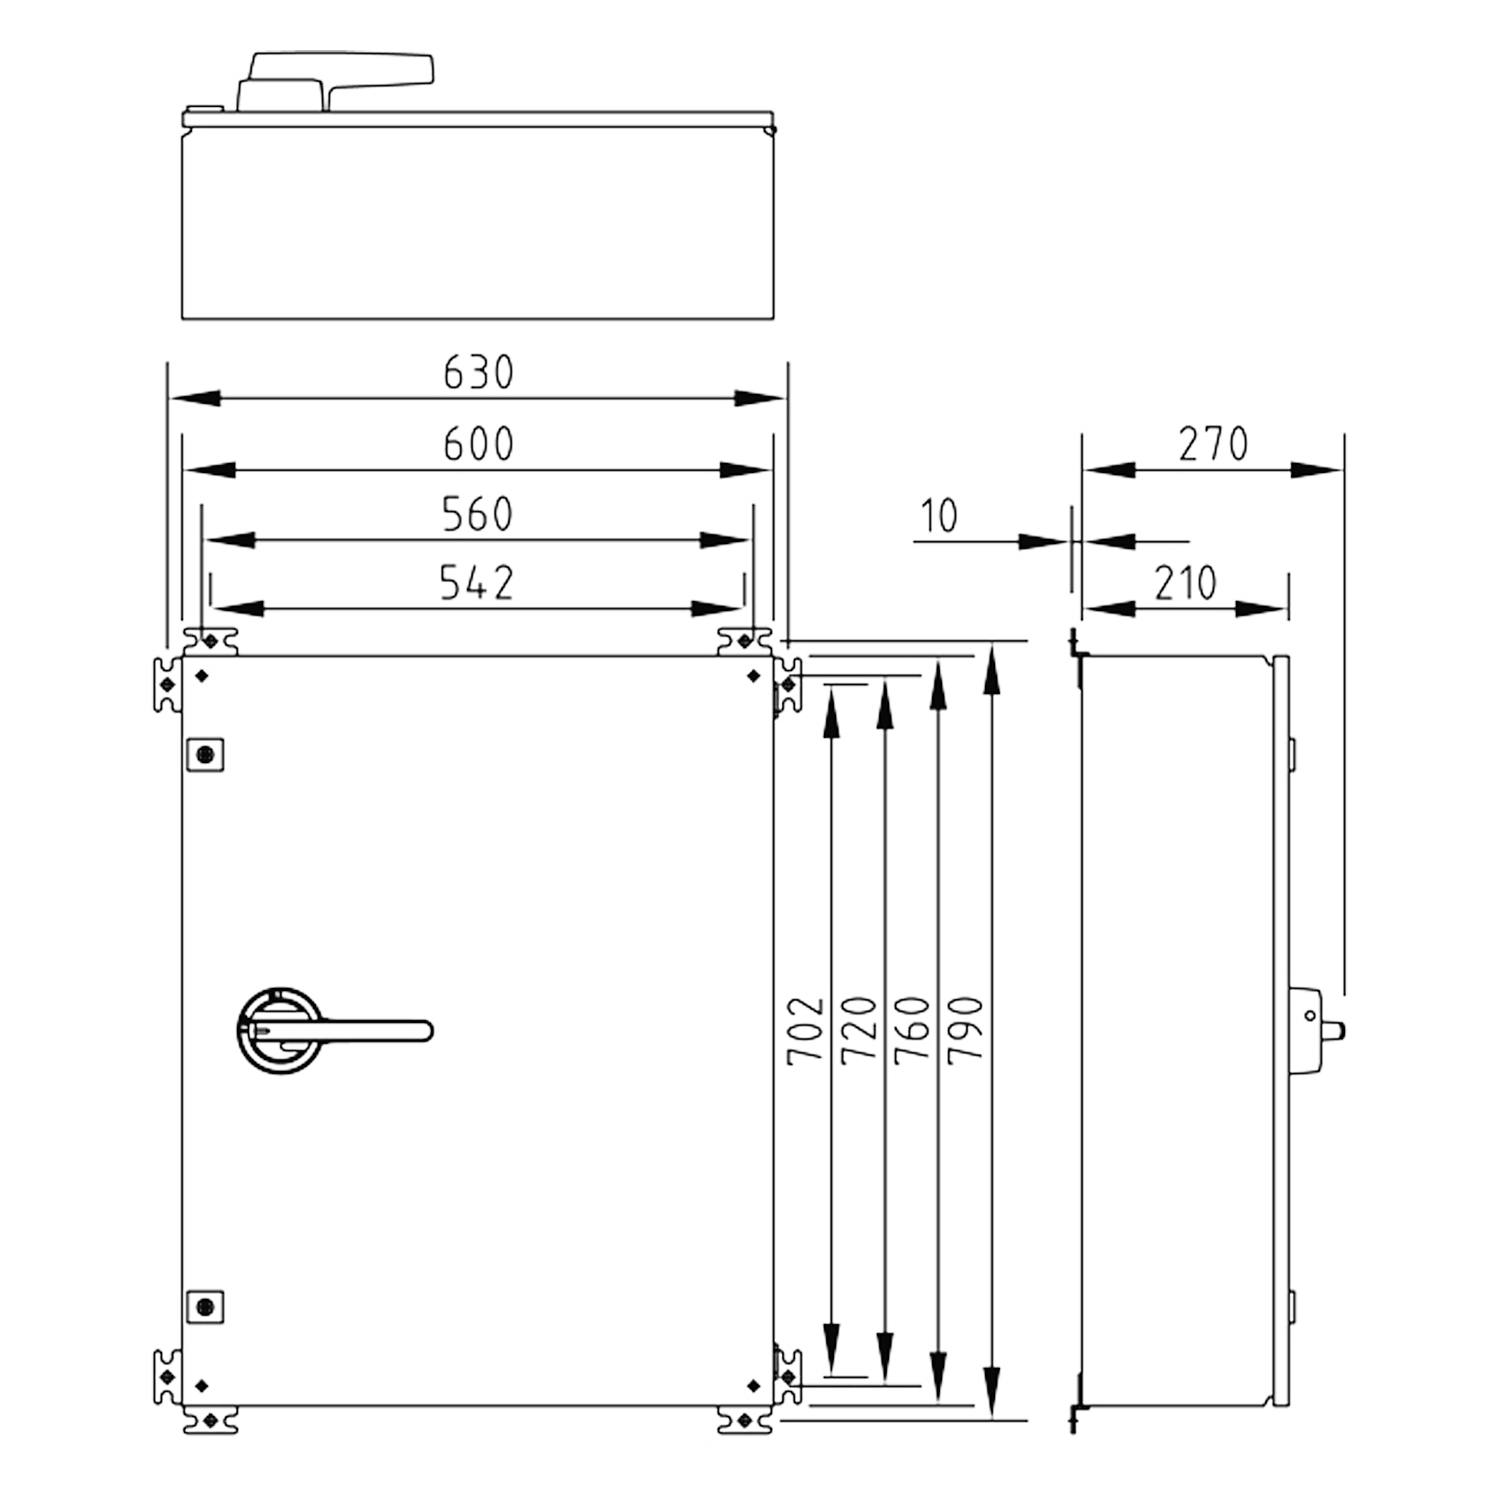 hight resolution of product diagram